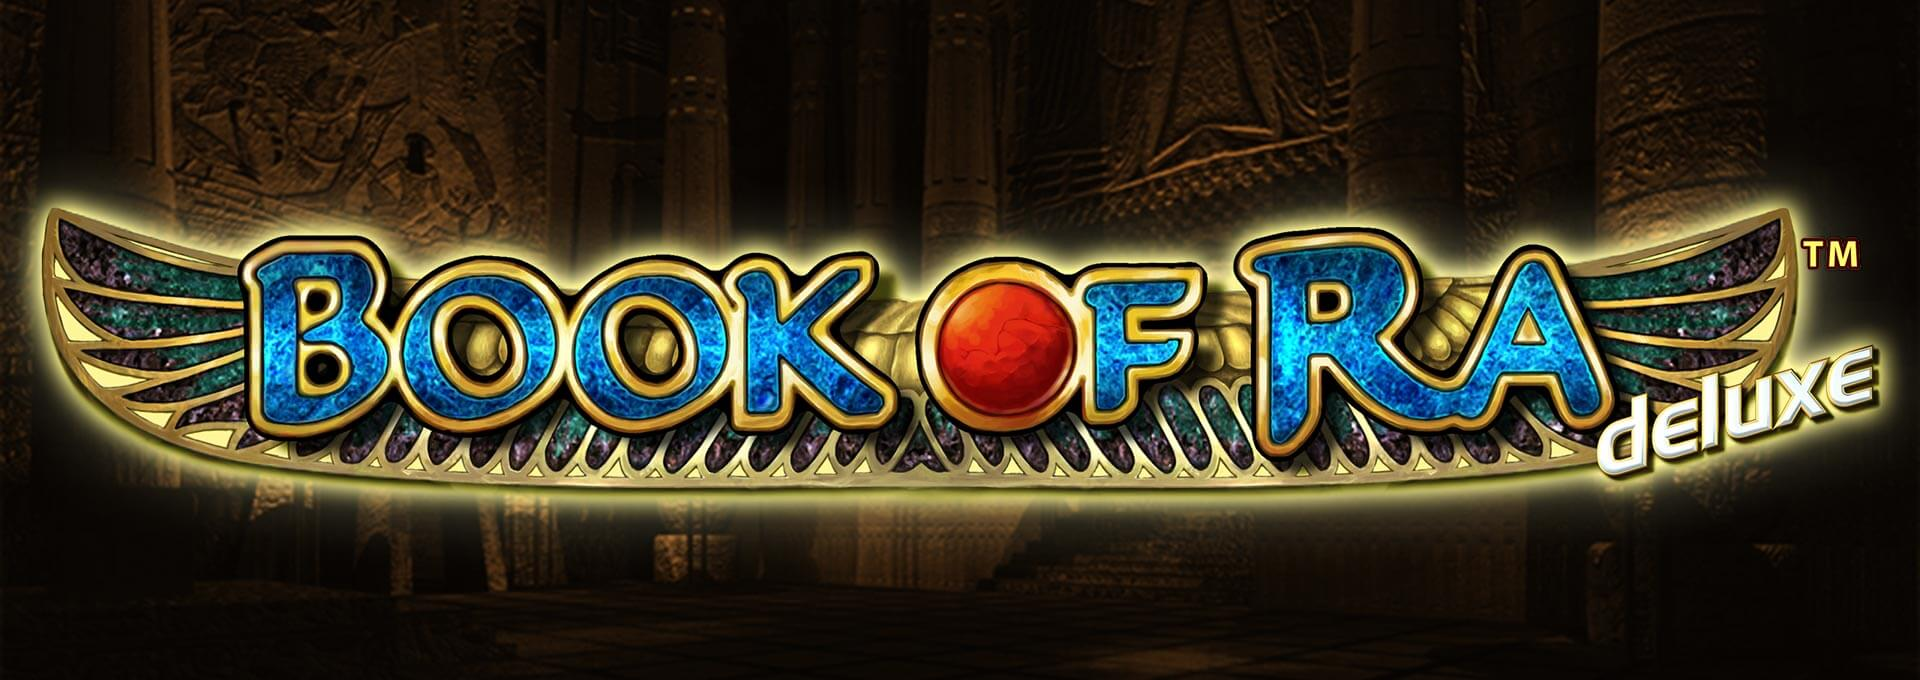 casino online book of ra bokk of ra